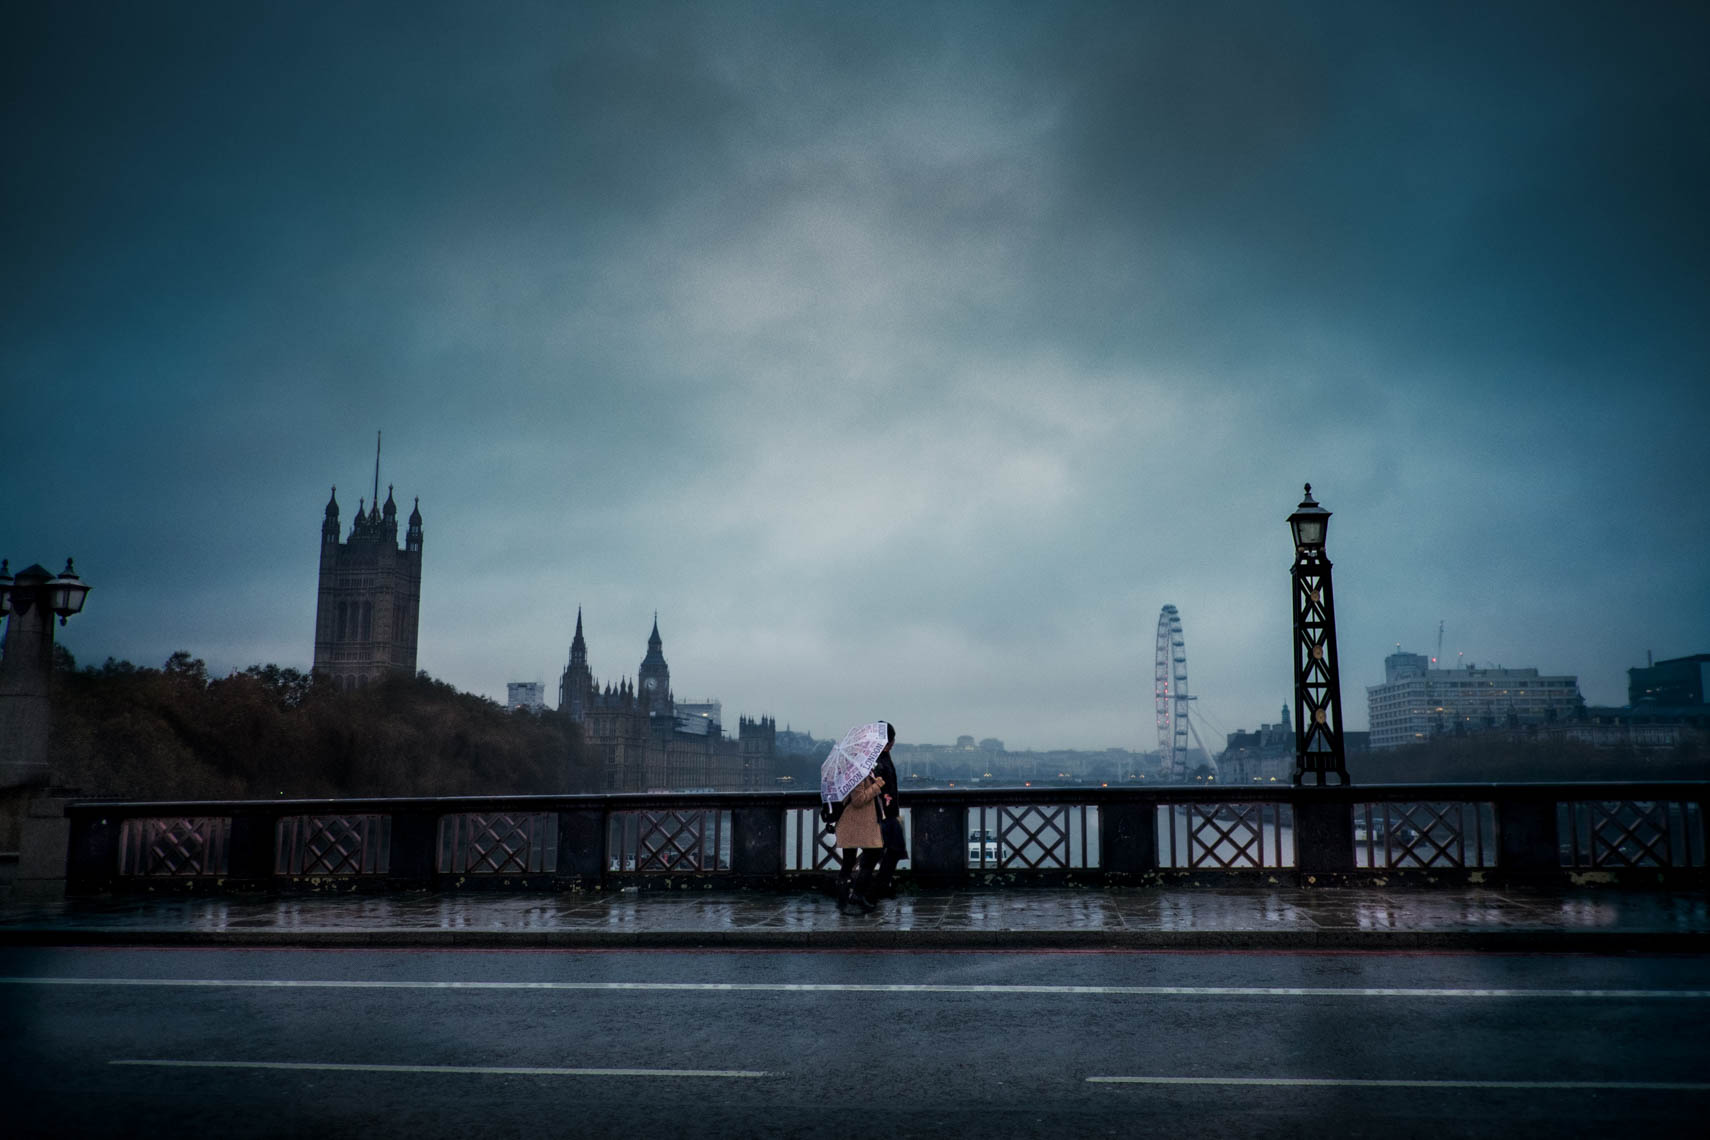 Couple at Lambeth bridge.